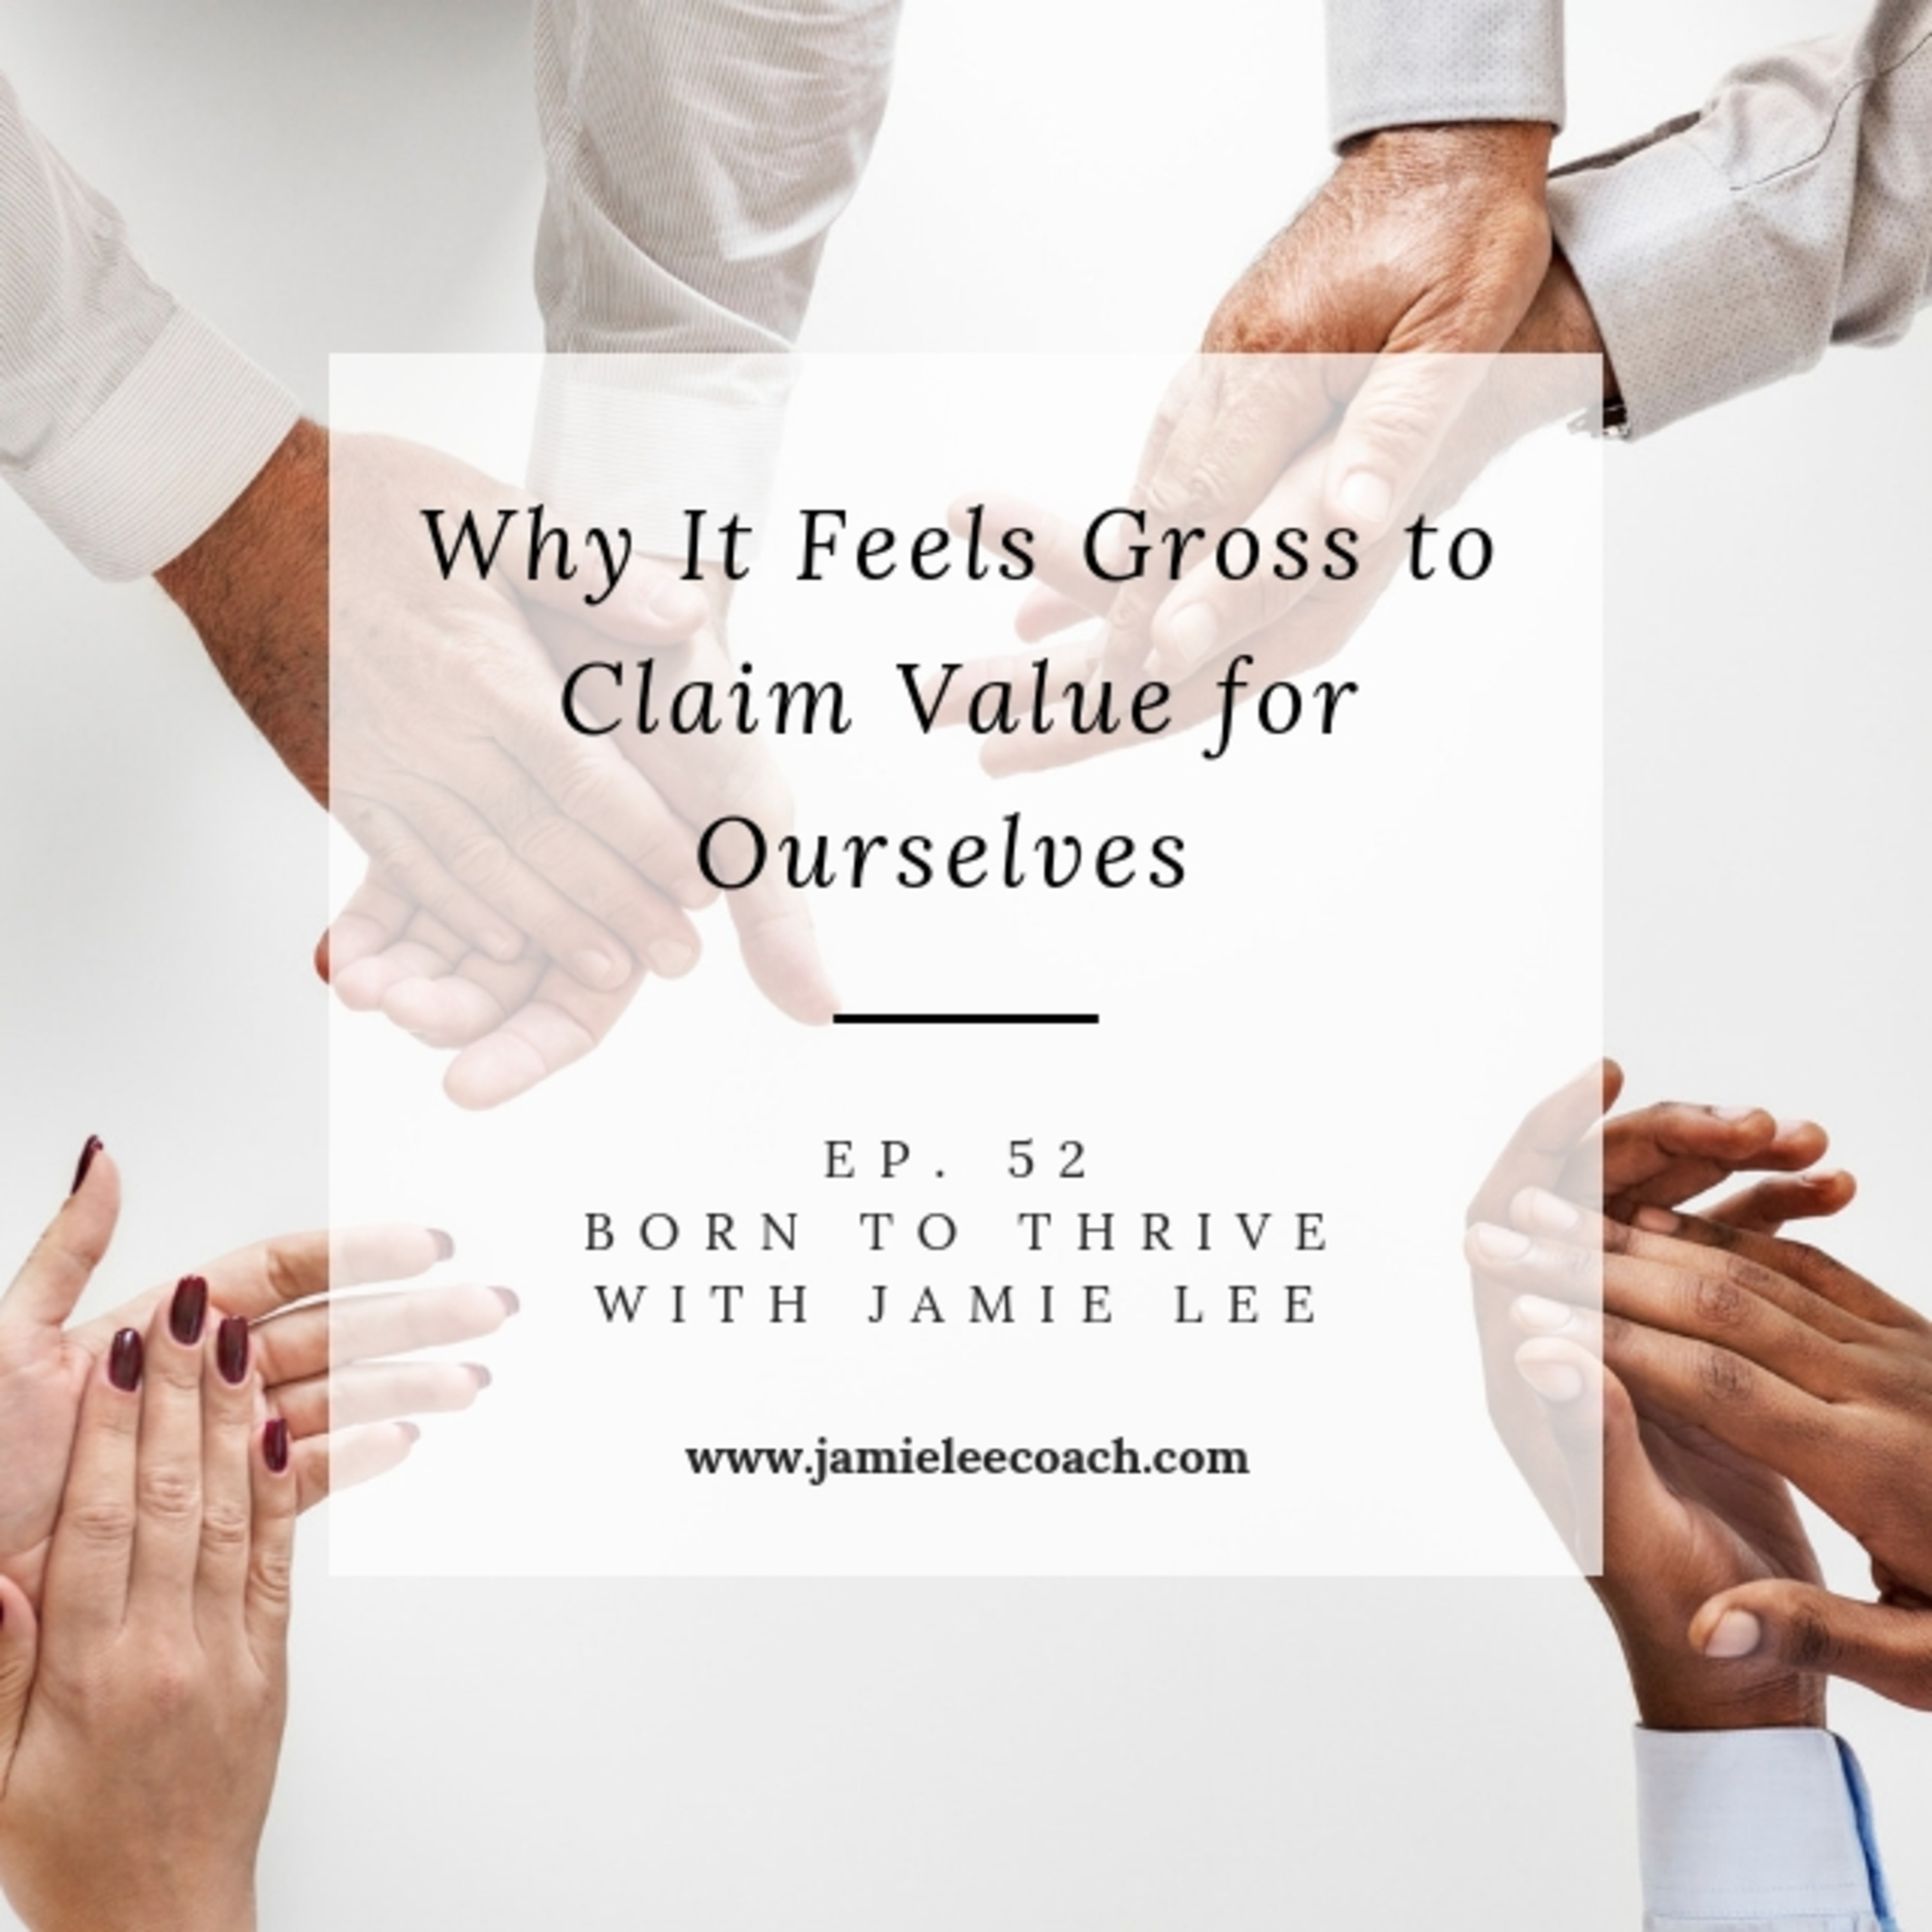 Ep. 52 Why It Feels Gross to Claim Value For Ourselves